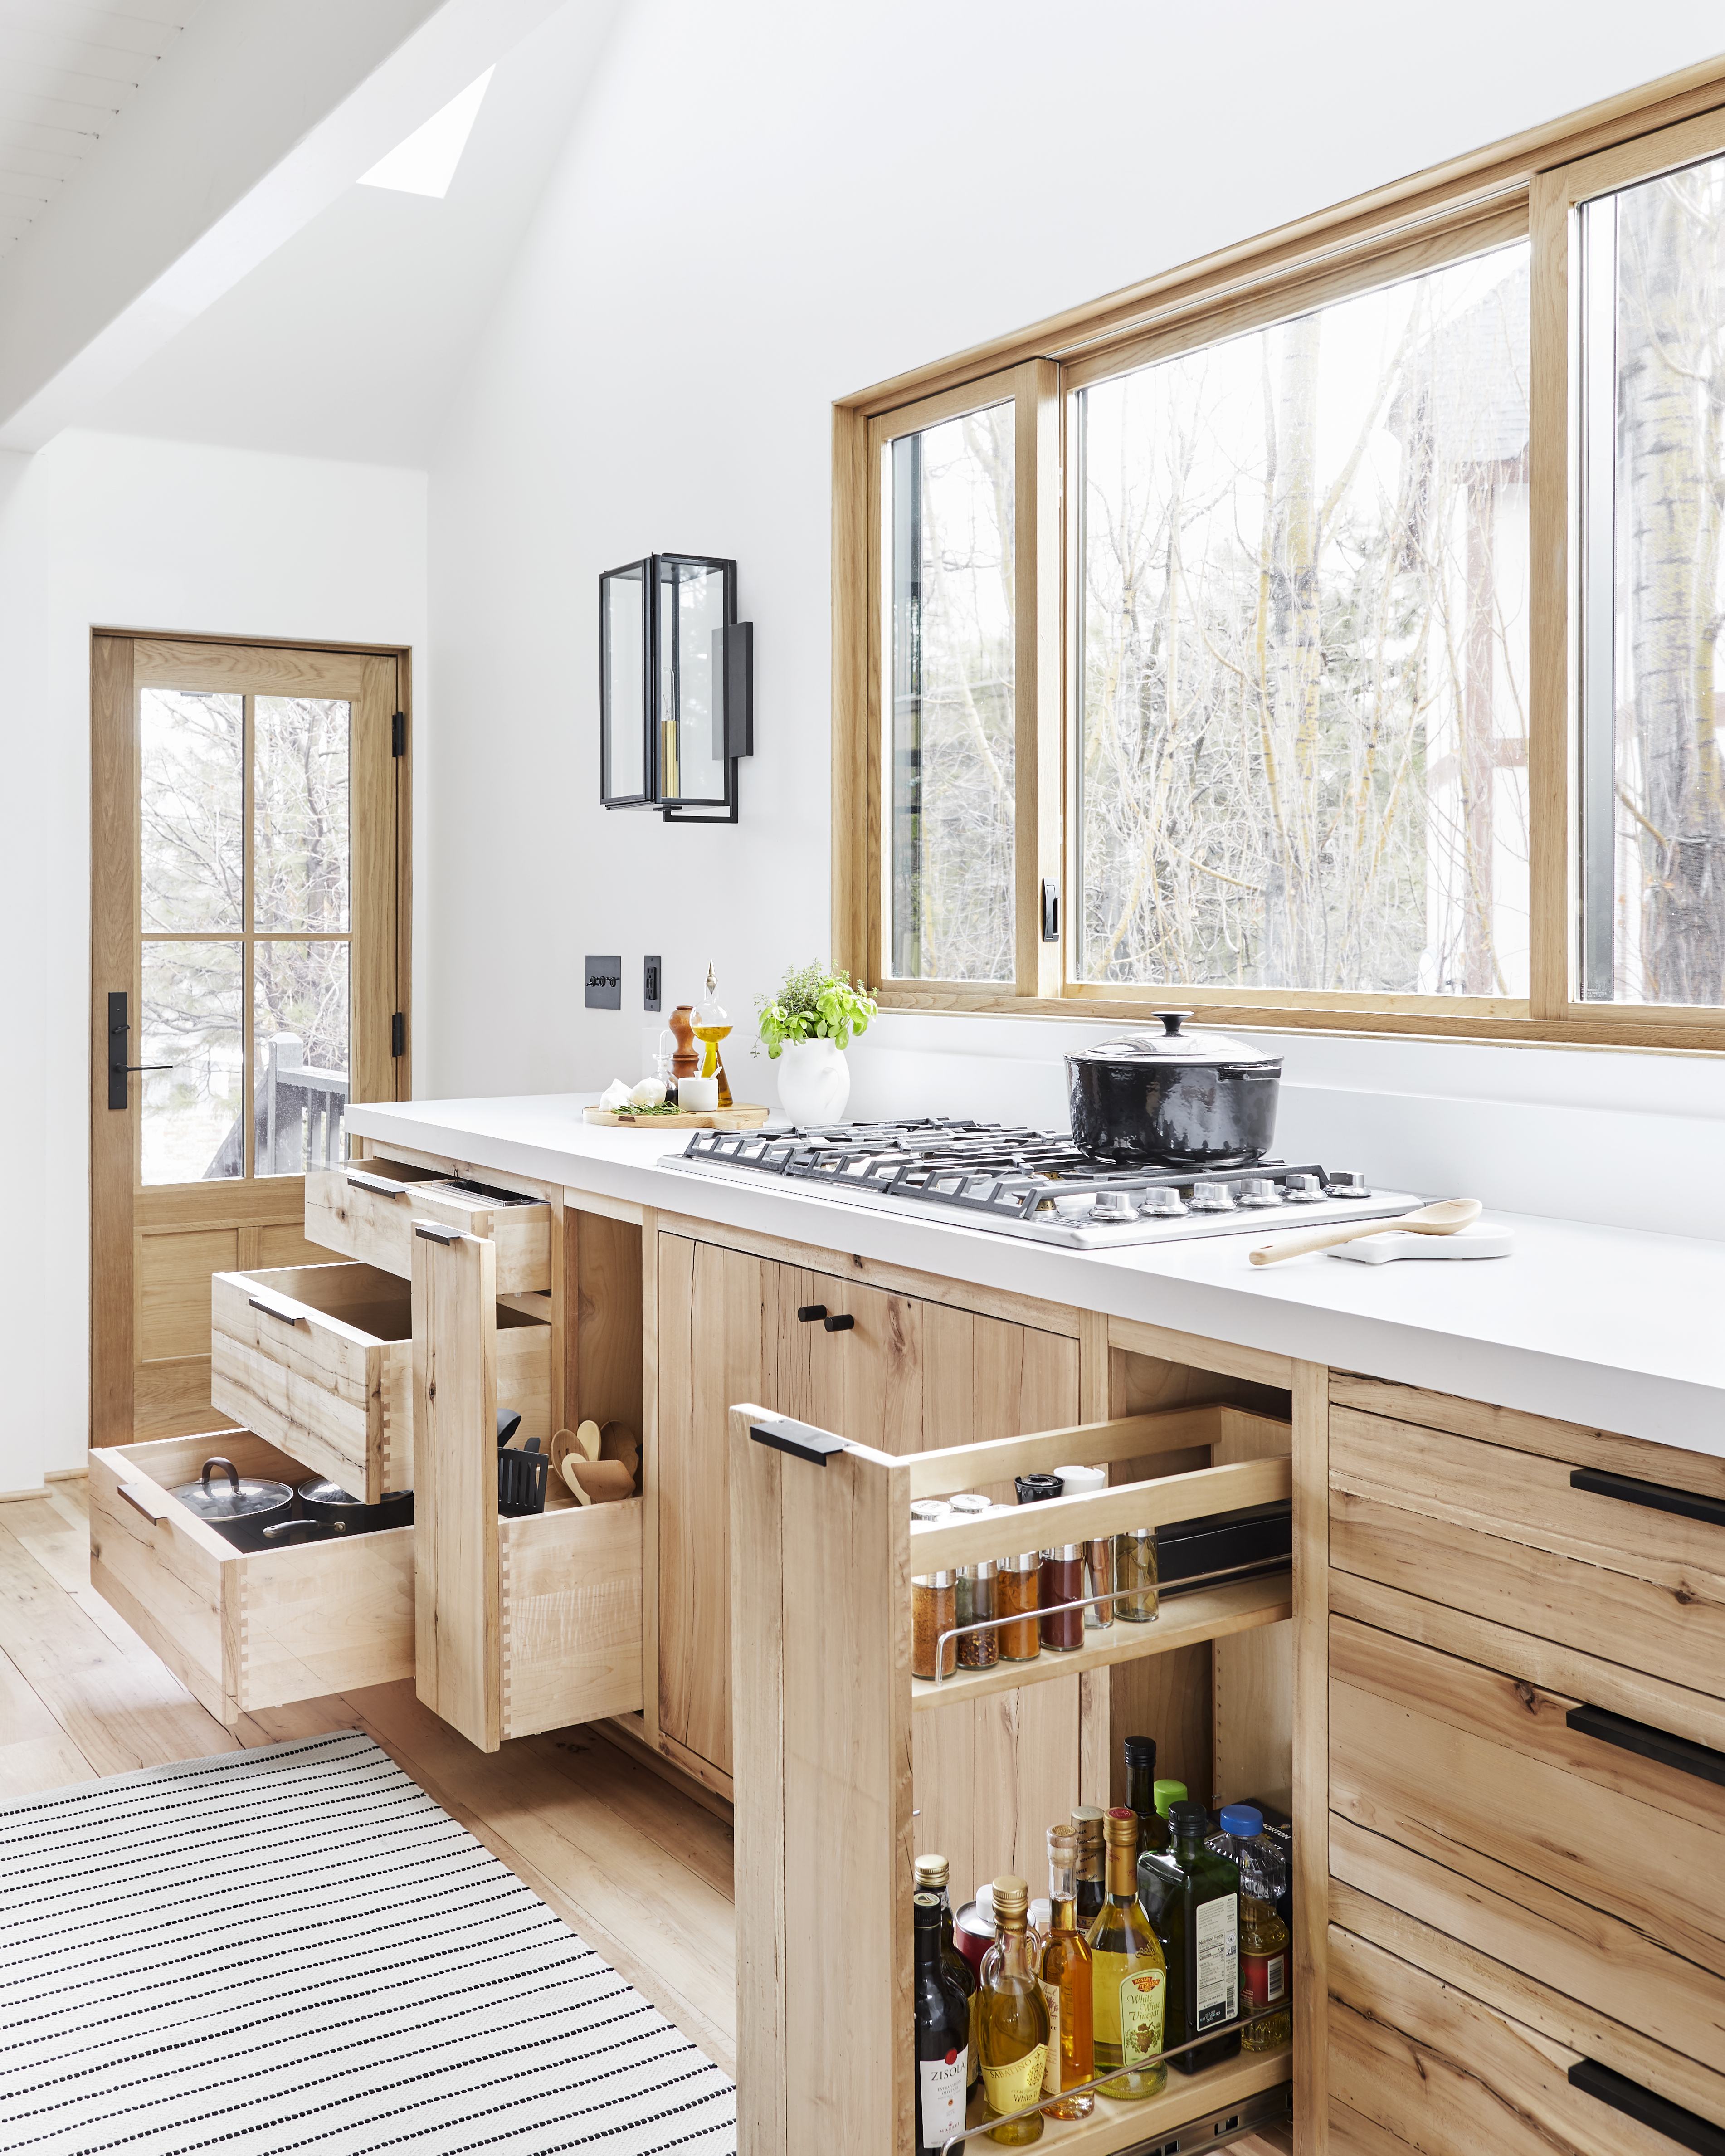 Creative Ideas For Kitchen Cabinets: This Emily Henderson Kitchen Is Full Of Kitchen